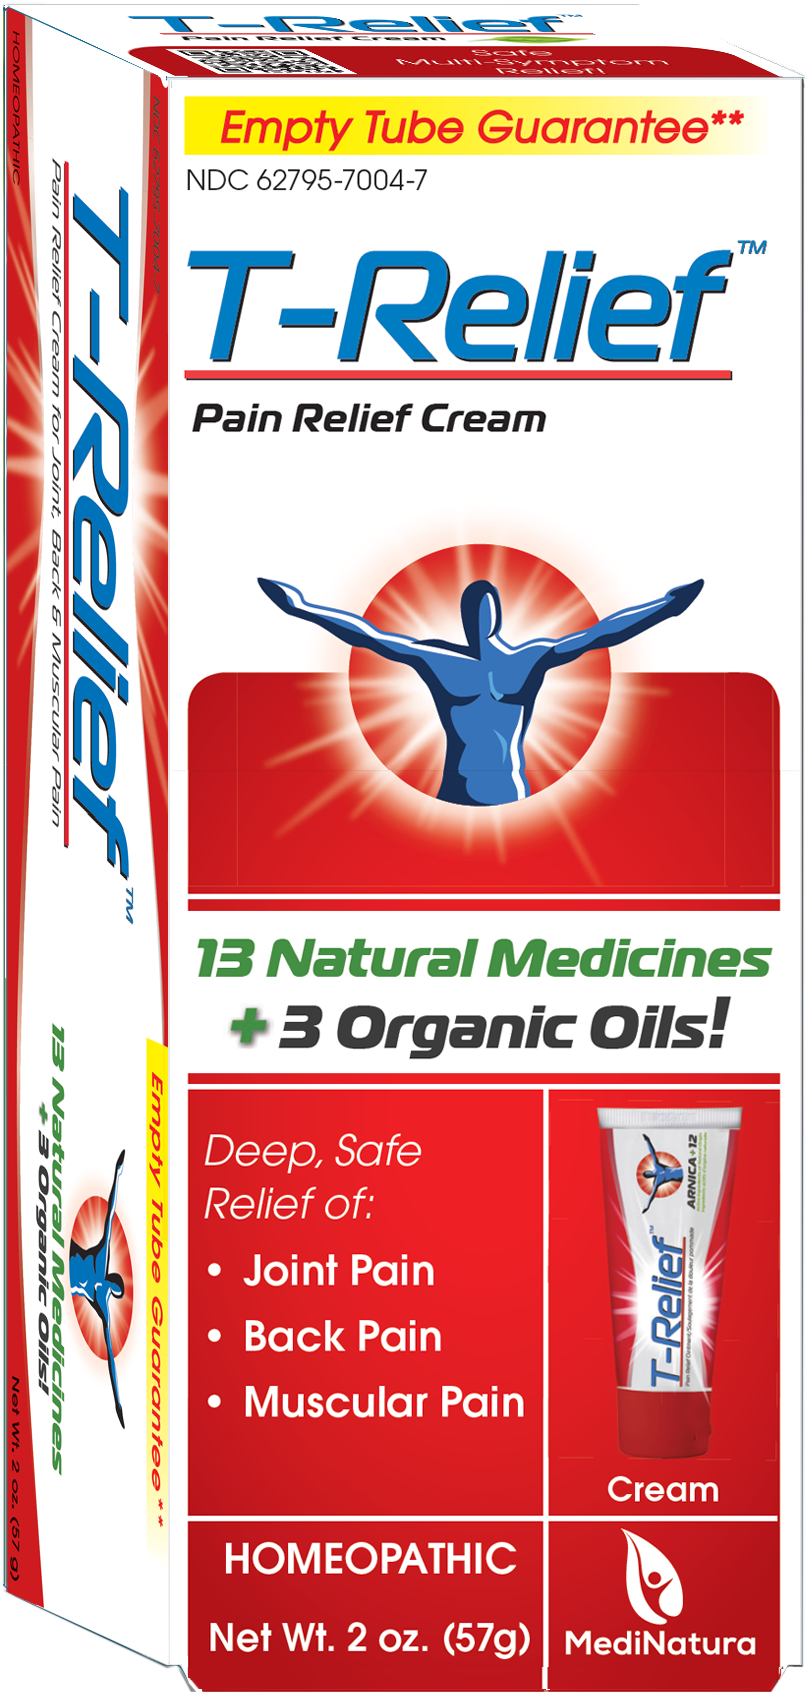 Pain Relief Ointment provides deep, safe relief of a broad spectrum of body pains by MediNatura T-Relief™